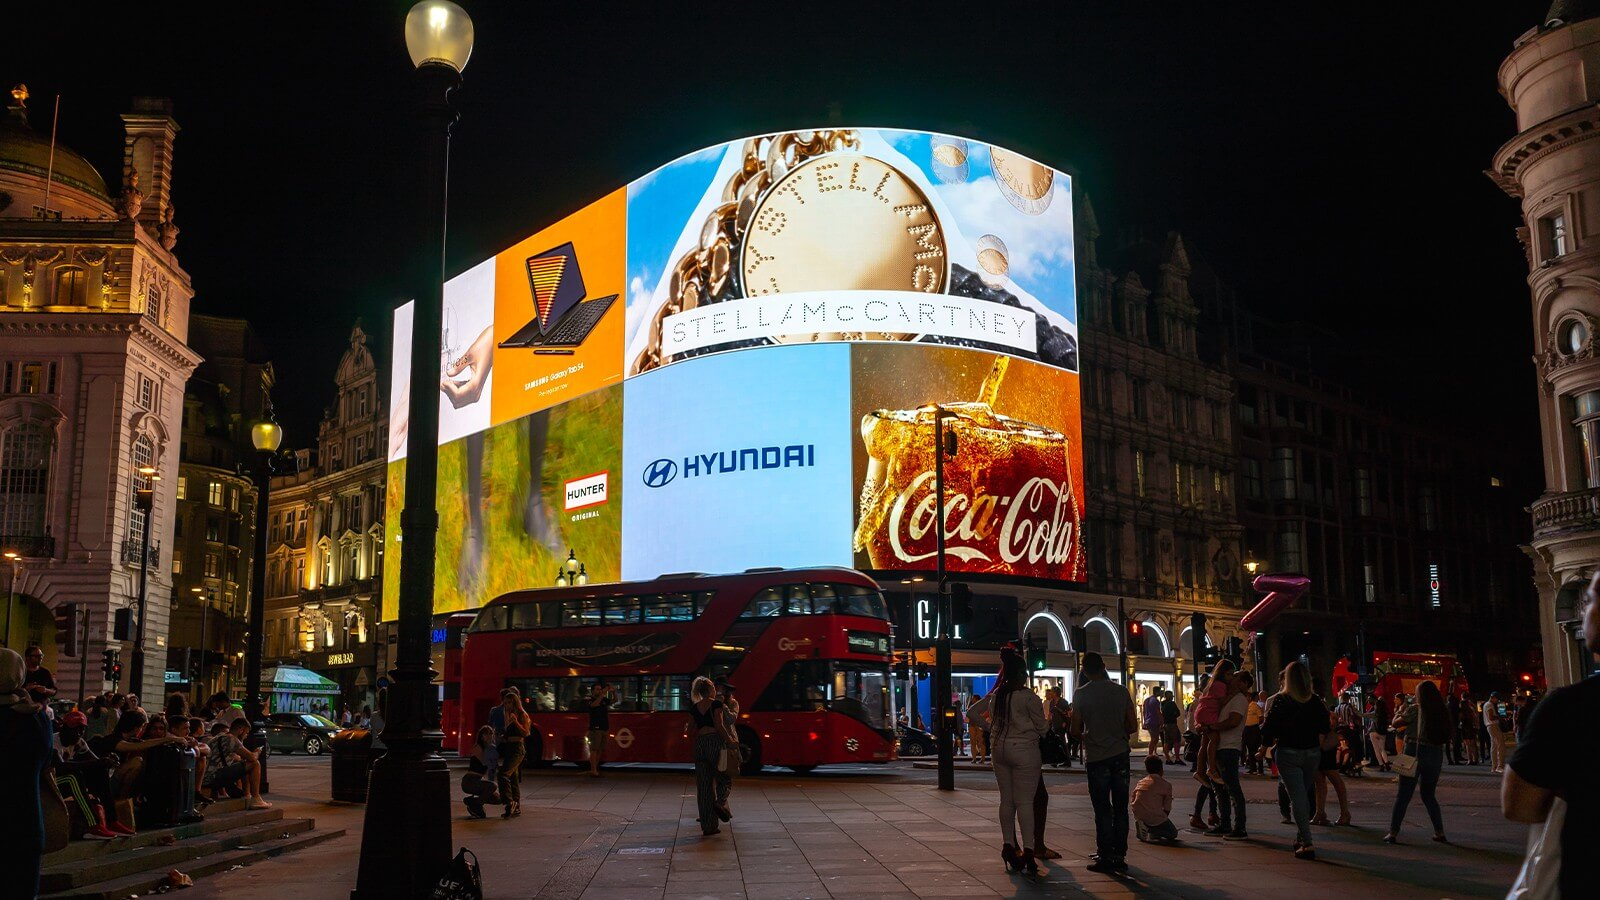 Digital Signage in Piccadilly Circus, London